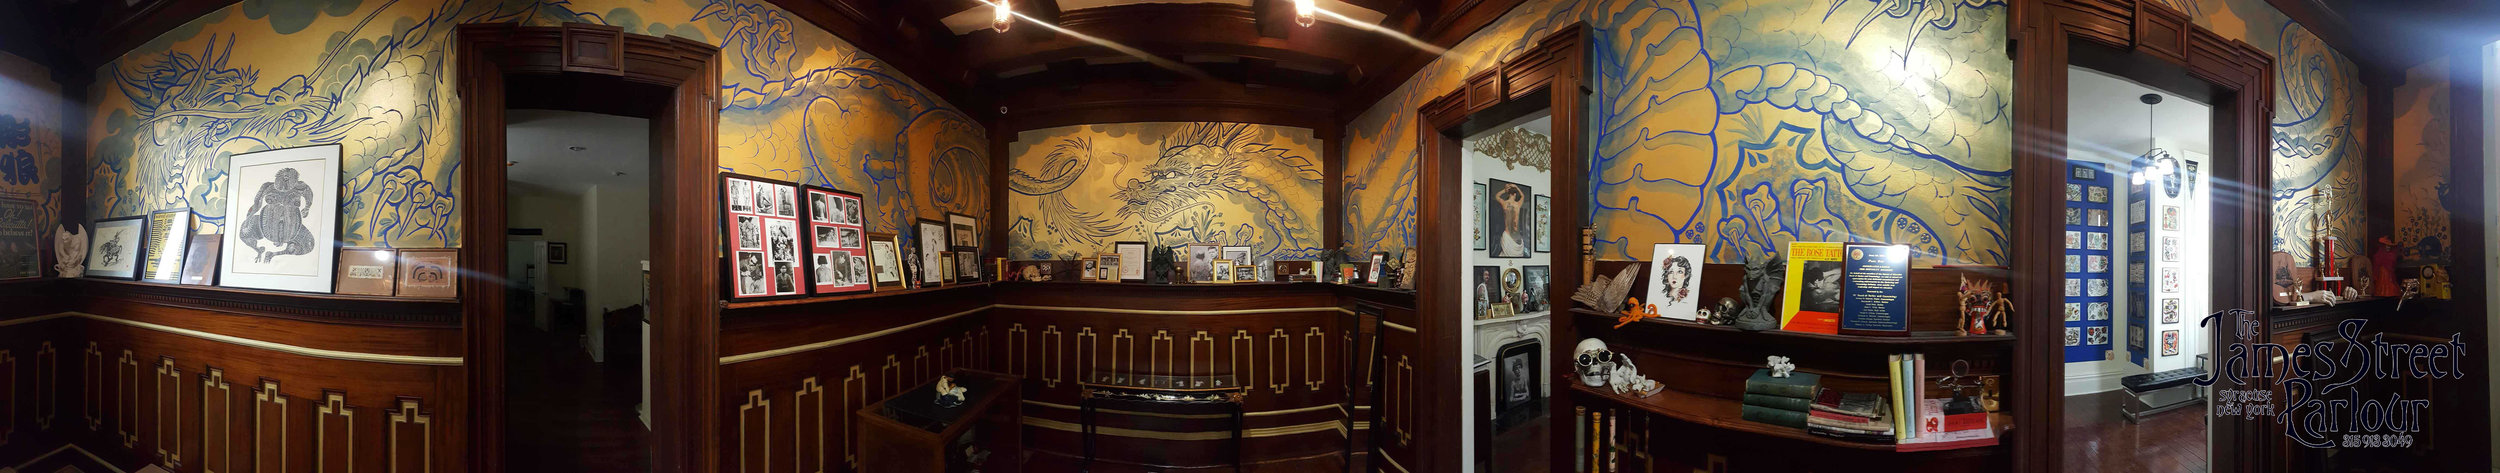 The mahogany paneling and ceiling were installed in 1907 by Thomas Ryan in what was the dinning room it now becomes The Dragon Room.